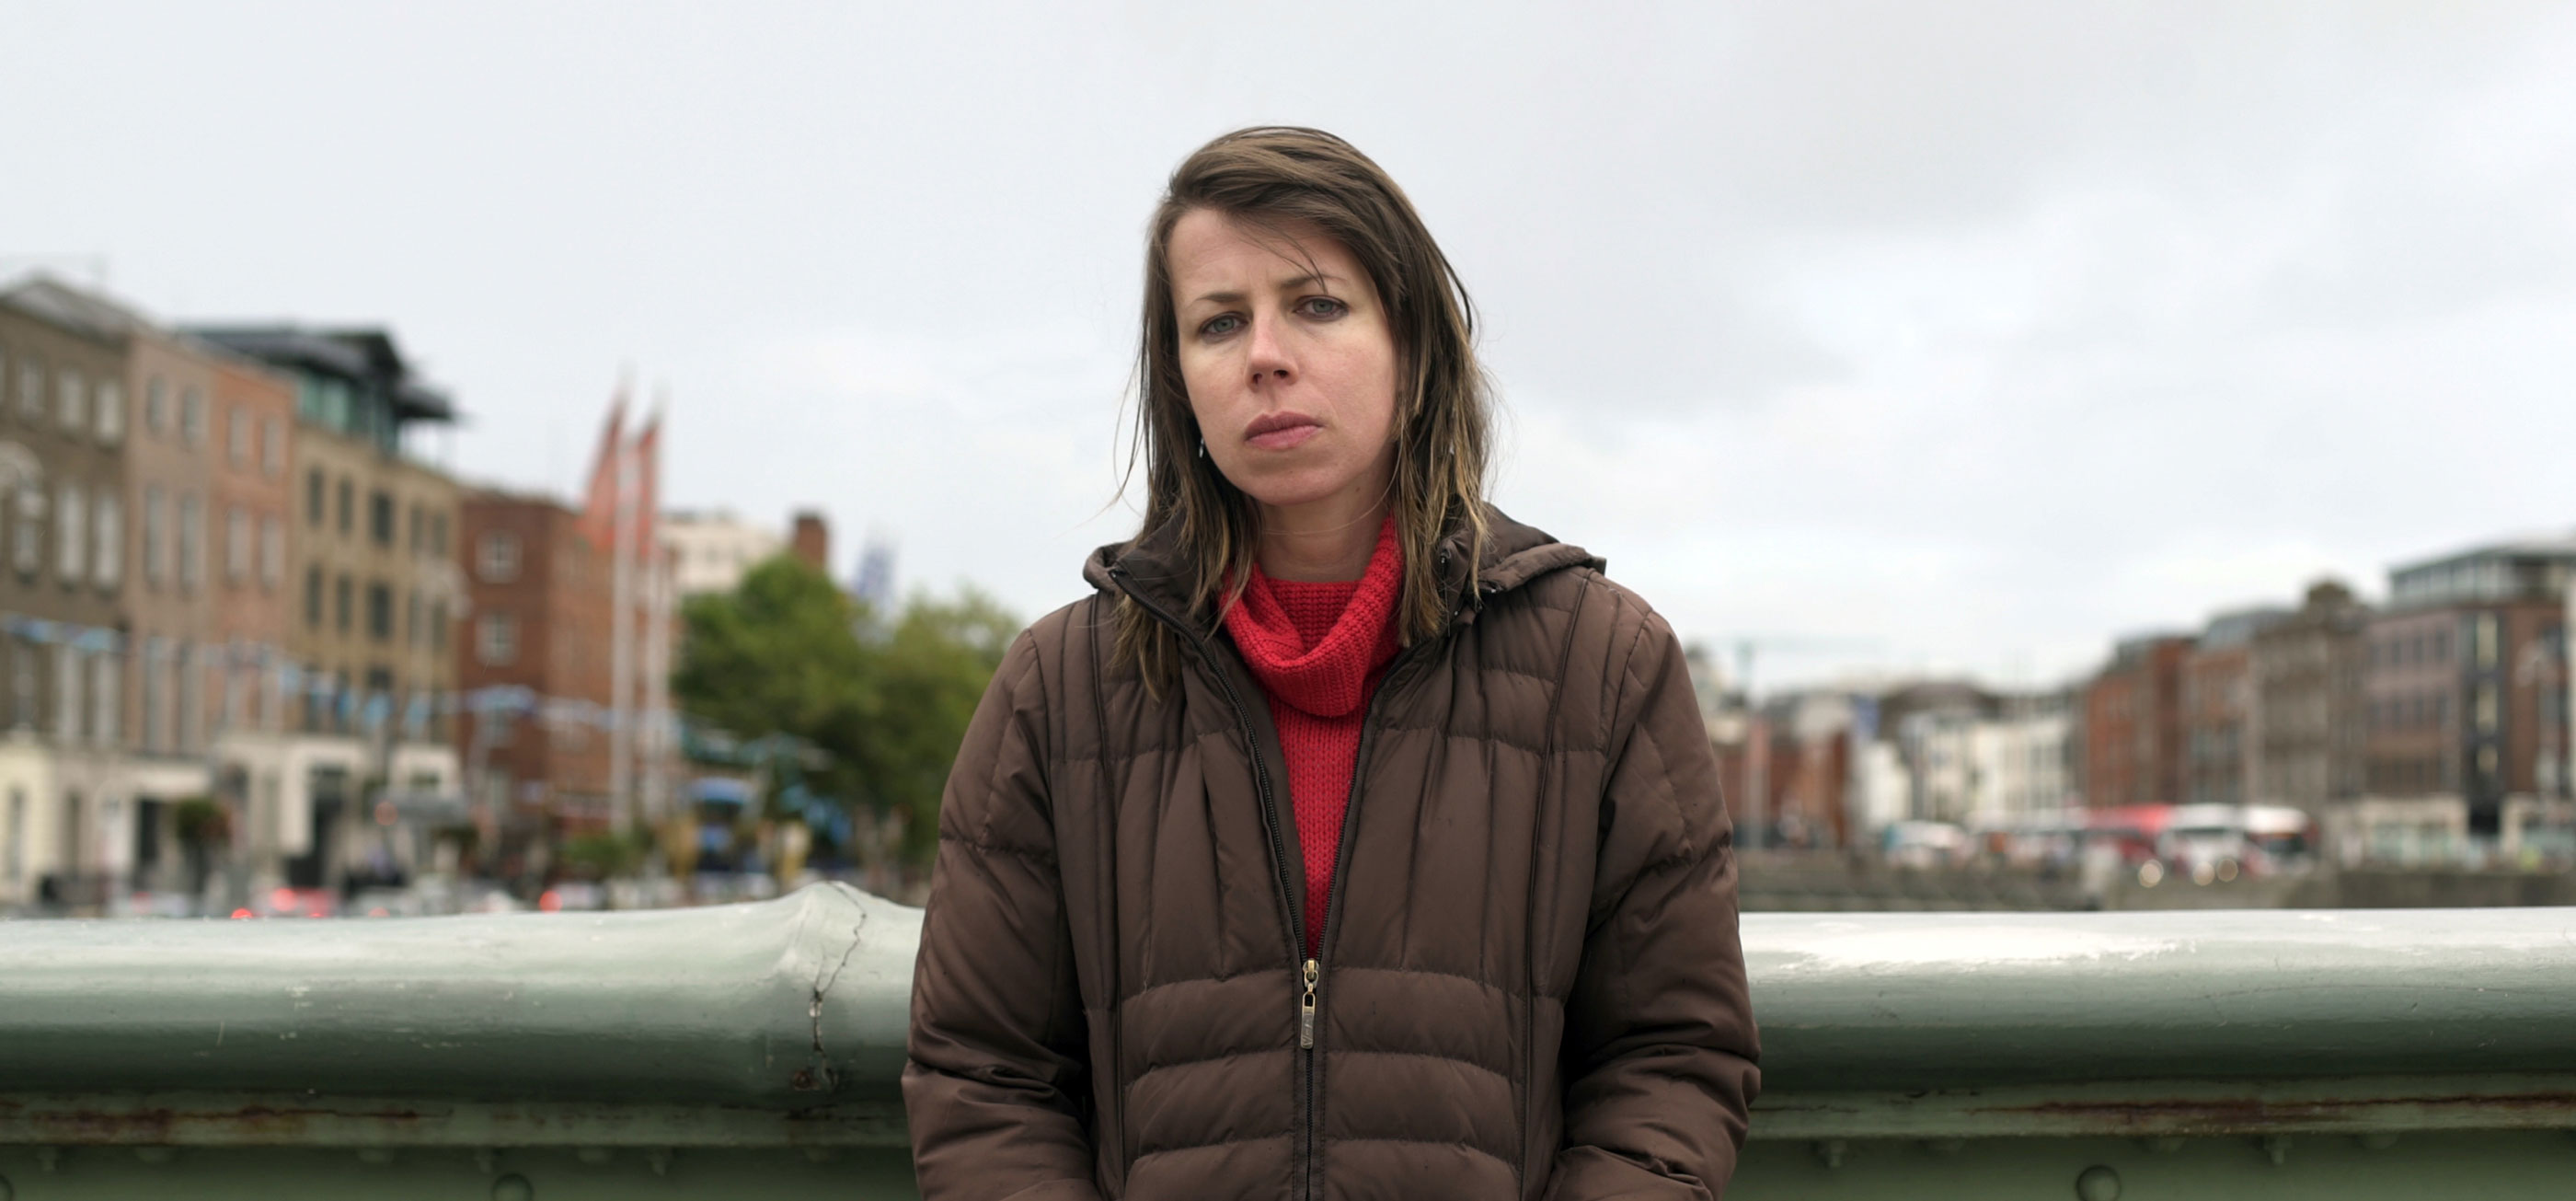 Novas Ireland video and photography production of homeless woman's story about alcohol addiction